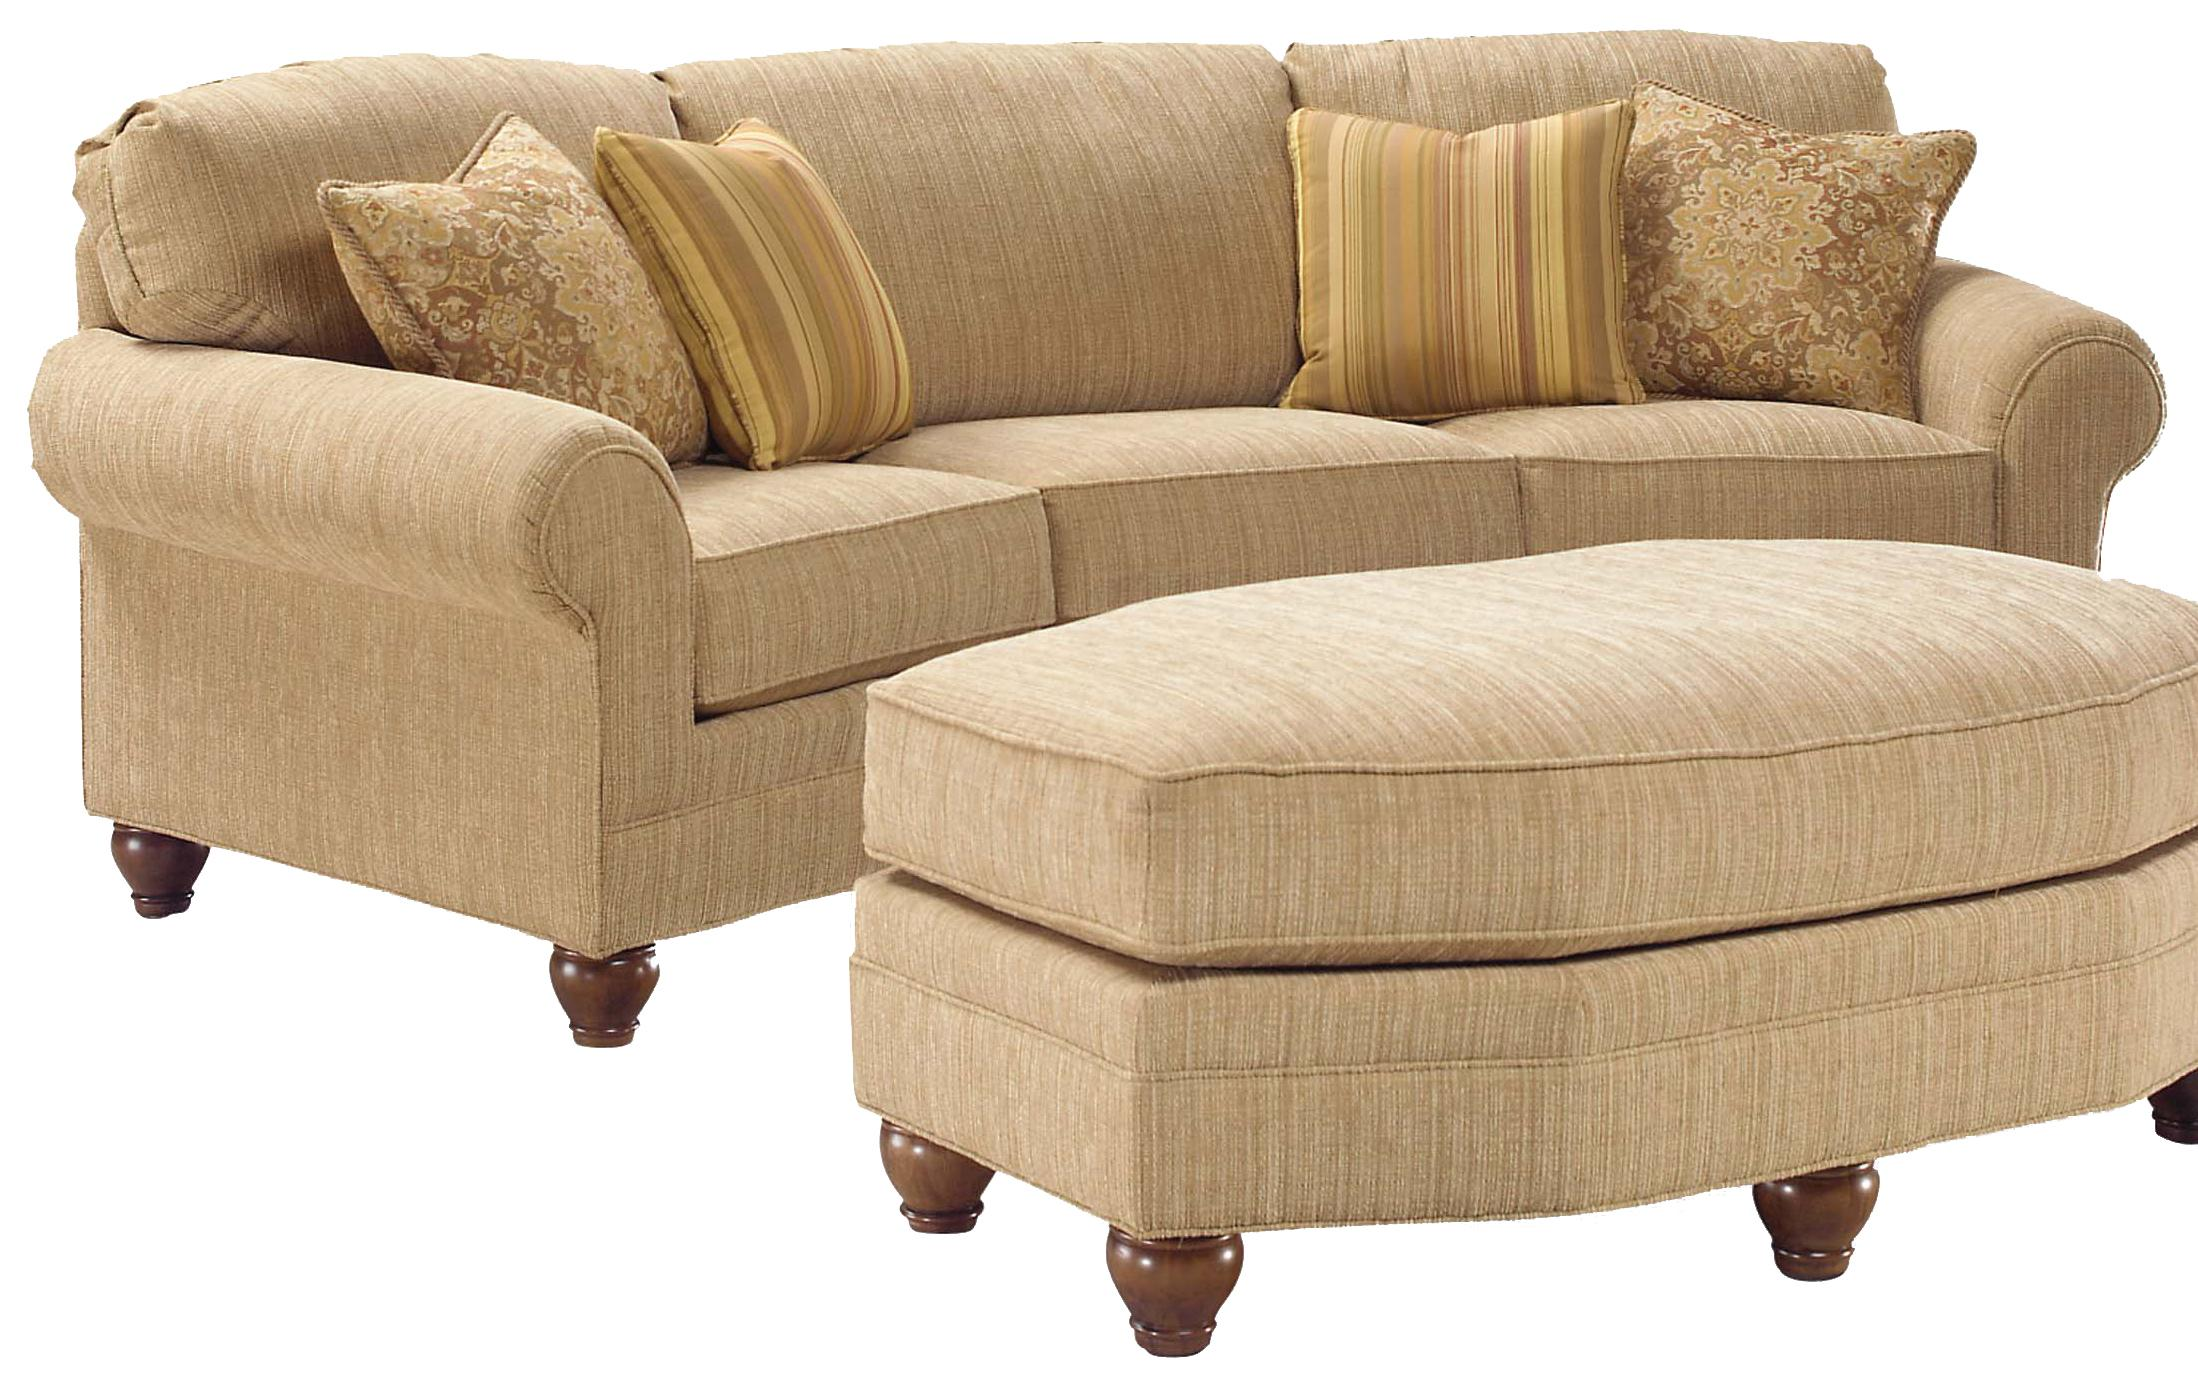 apartment sofas for sale cushions sofa seats fairfield 3768 curved arch olinde 39s furniture